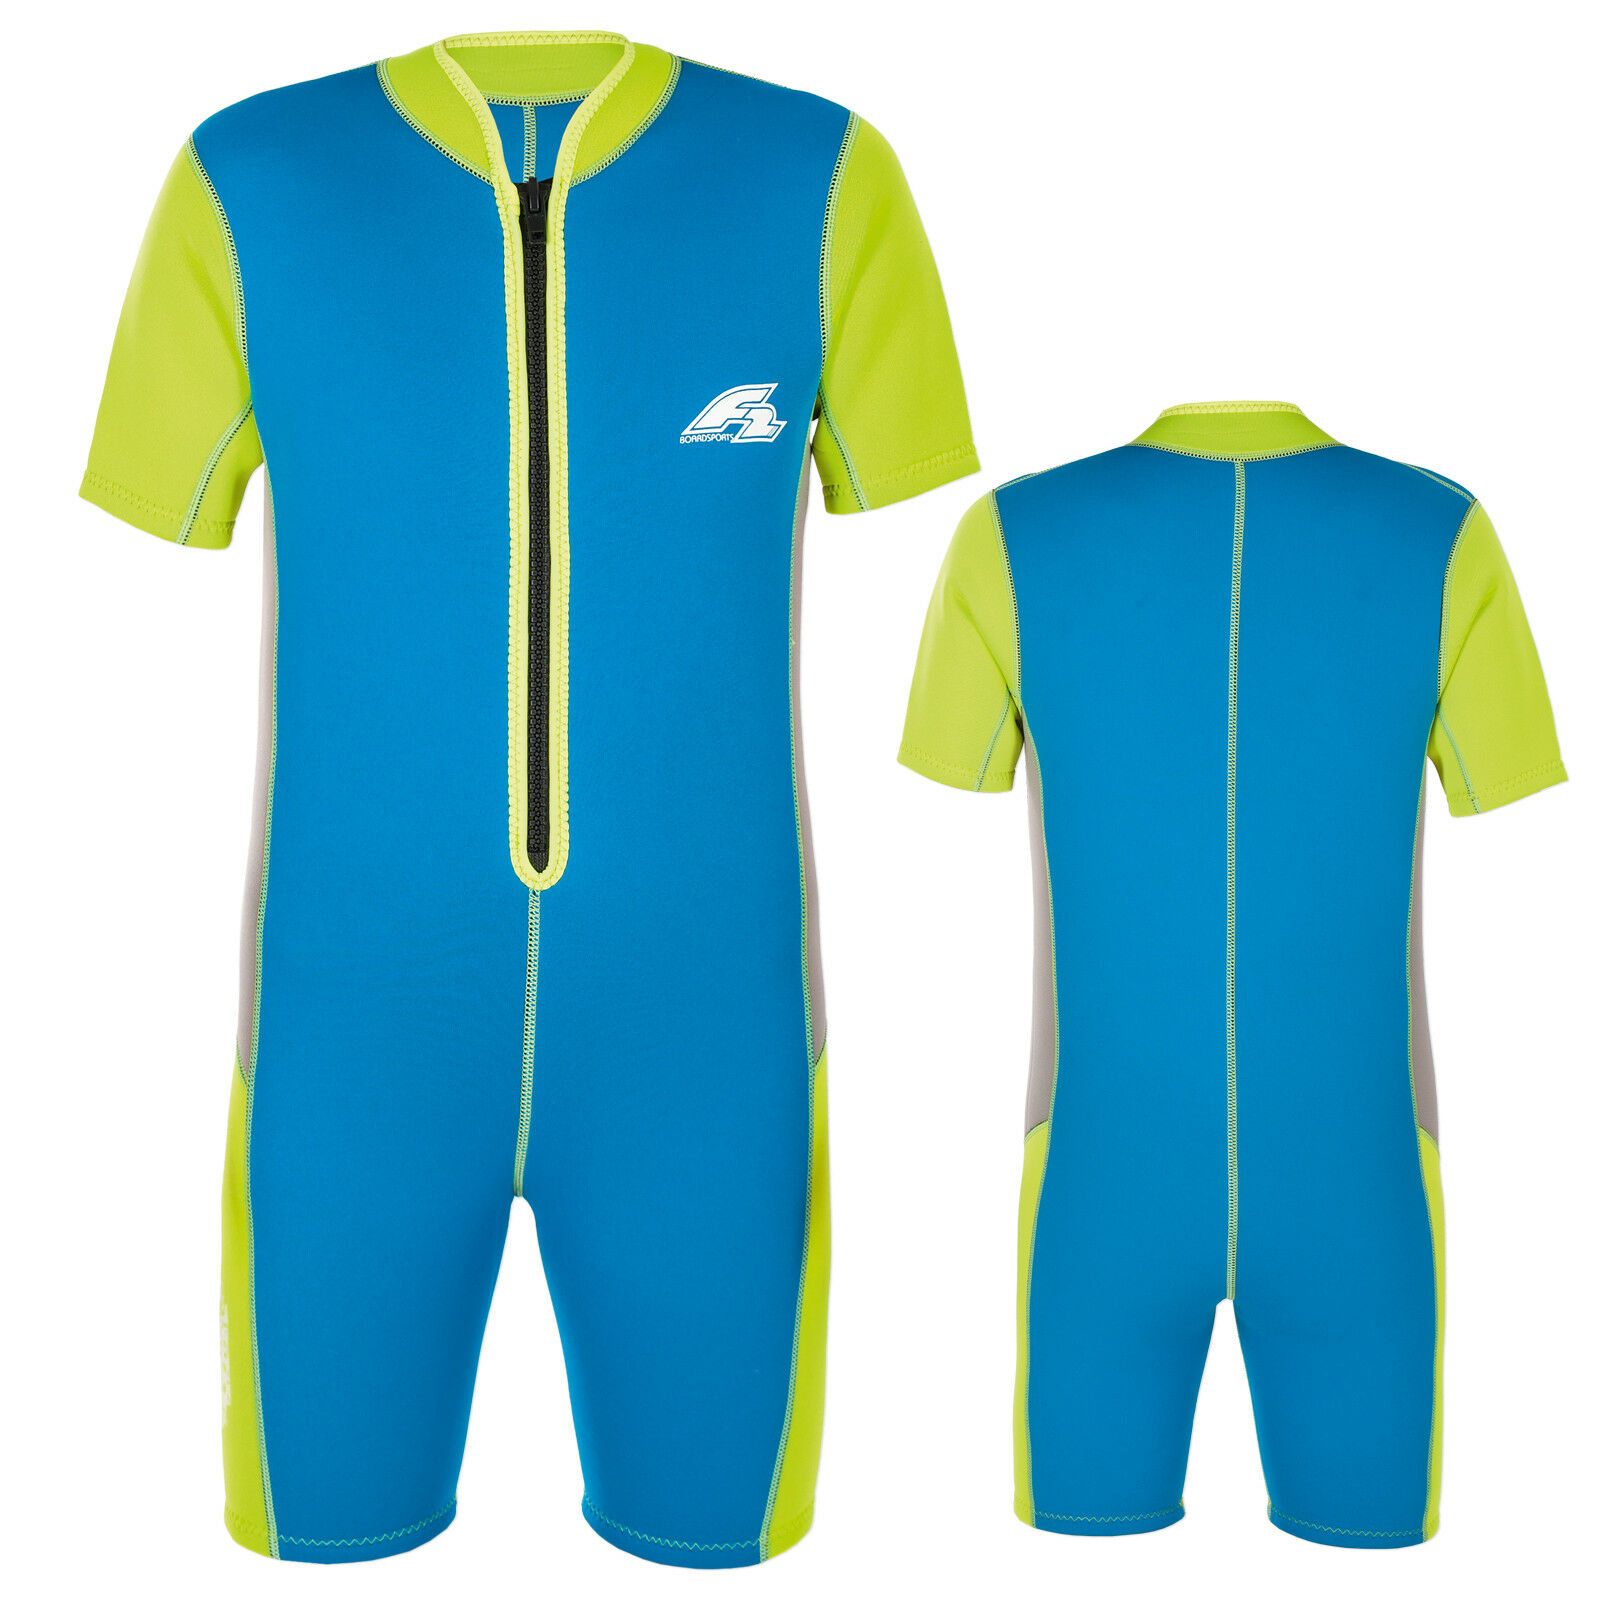 F2 Kids Wet Suit 2018  Kite Wake Neoprene Shorty for Kids  Approx. 12 Jahre